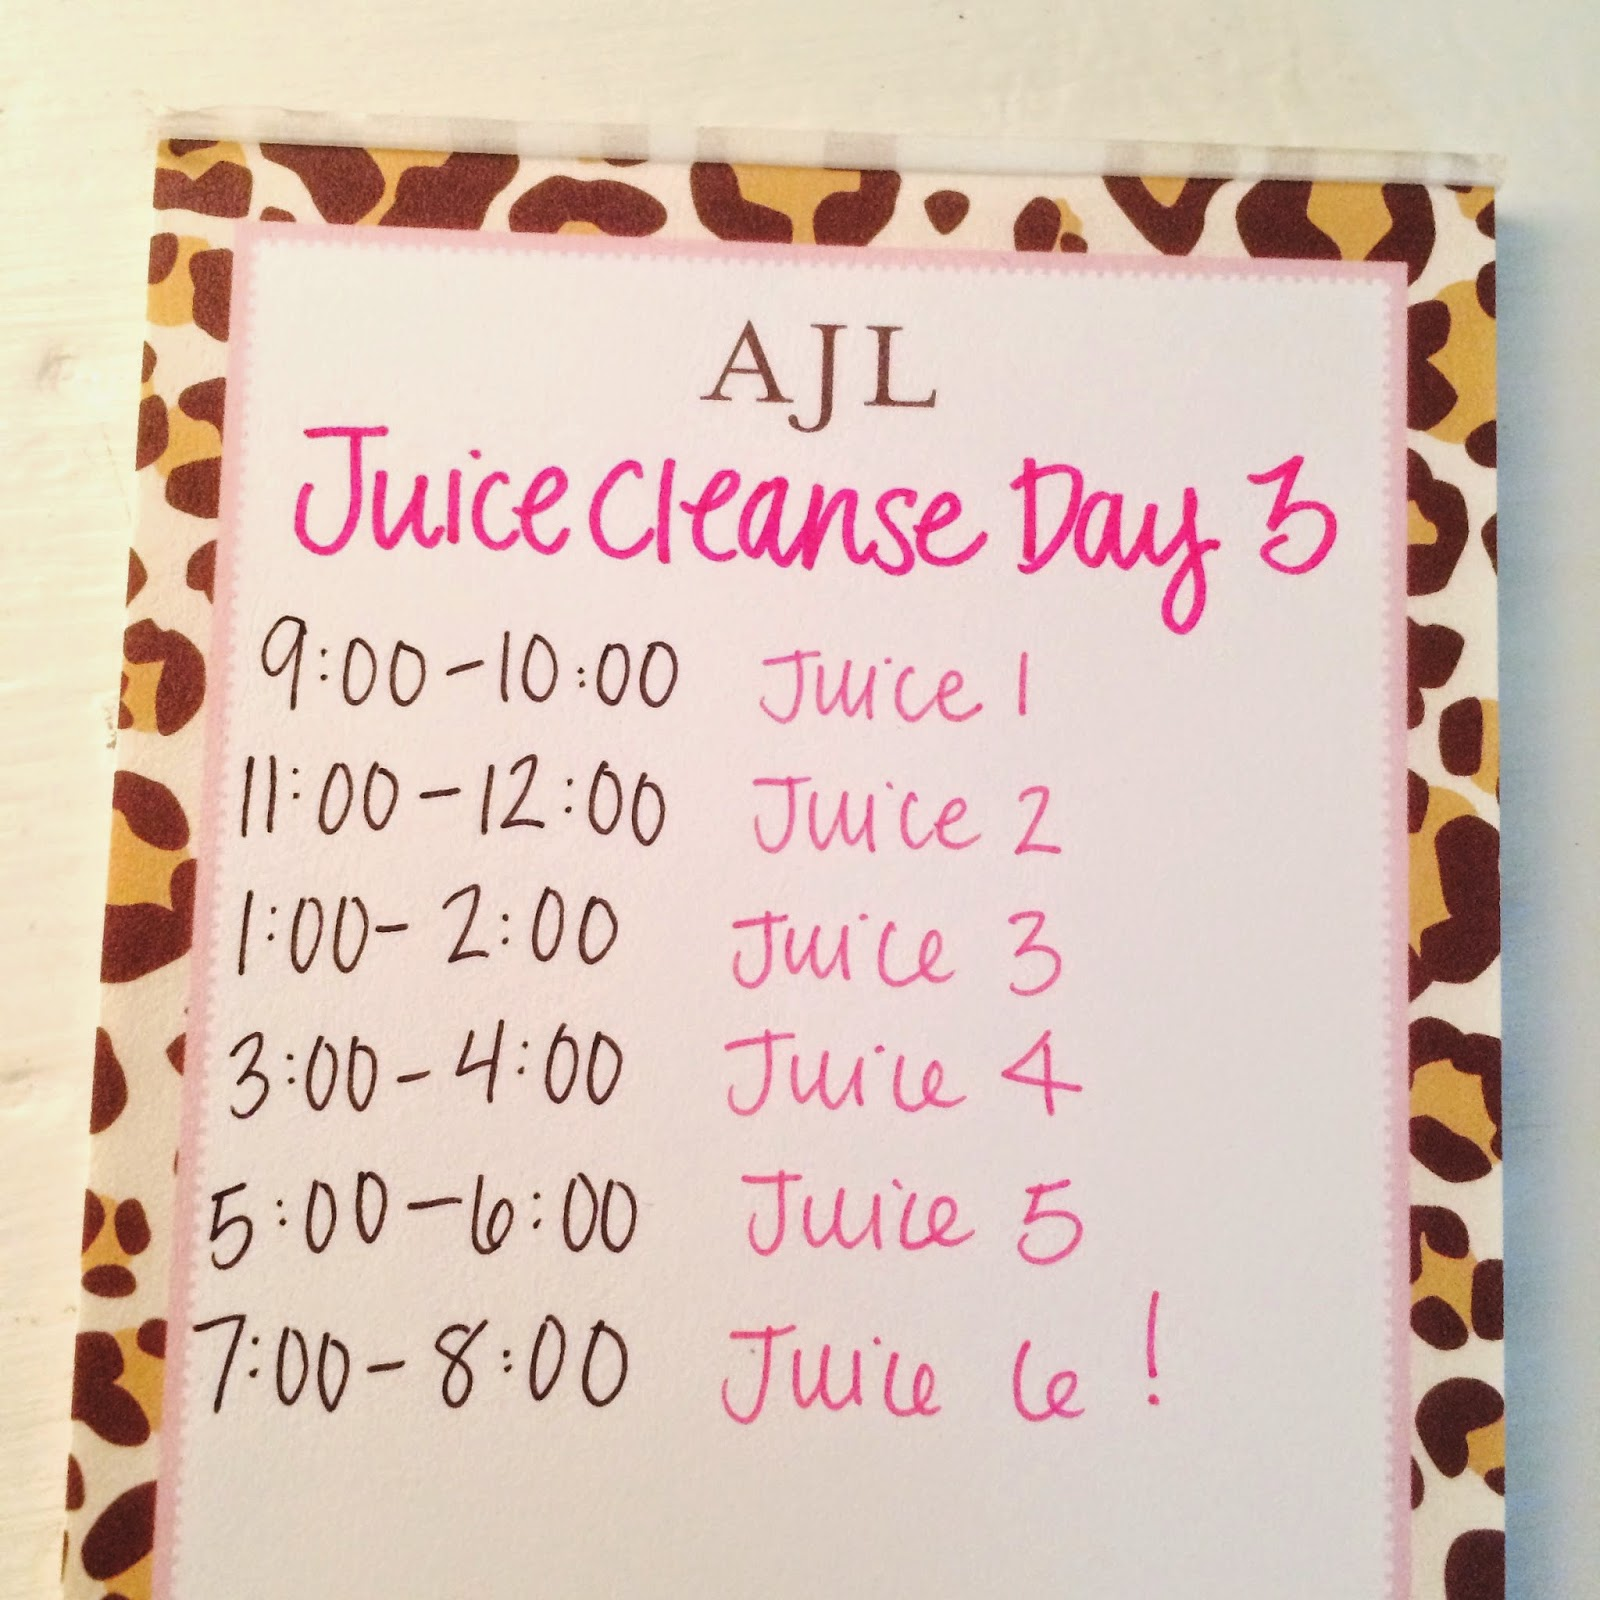 All about the juice cleanse i believe in pink jessica dallas tx kelly bethesda md malvernweather